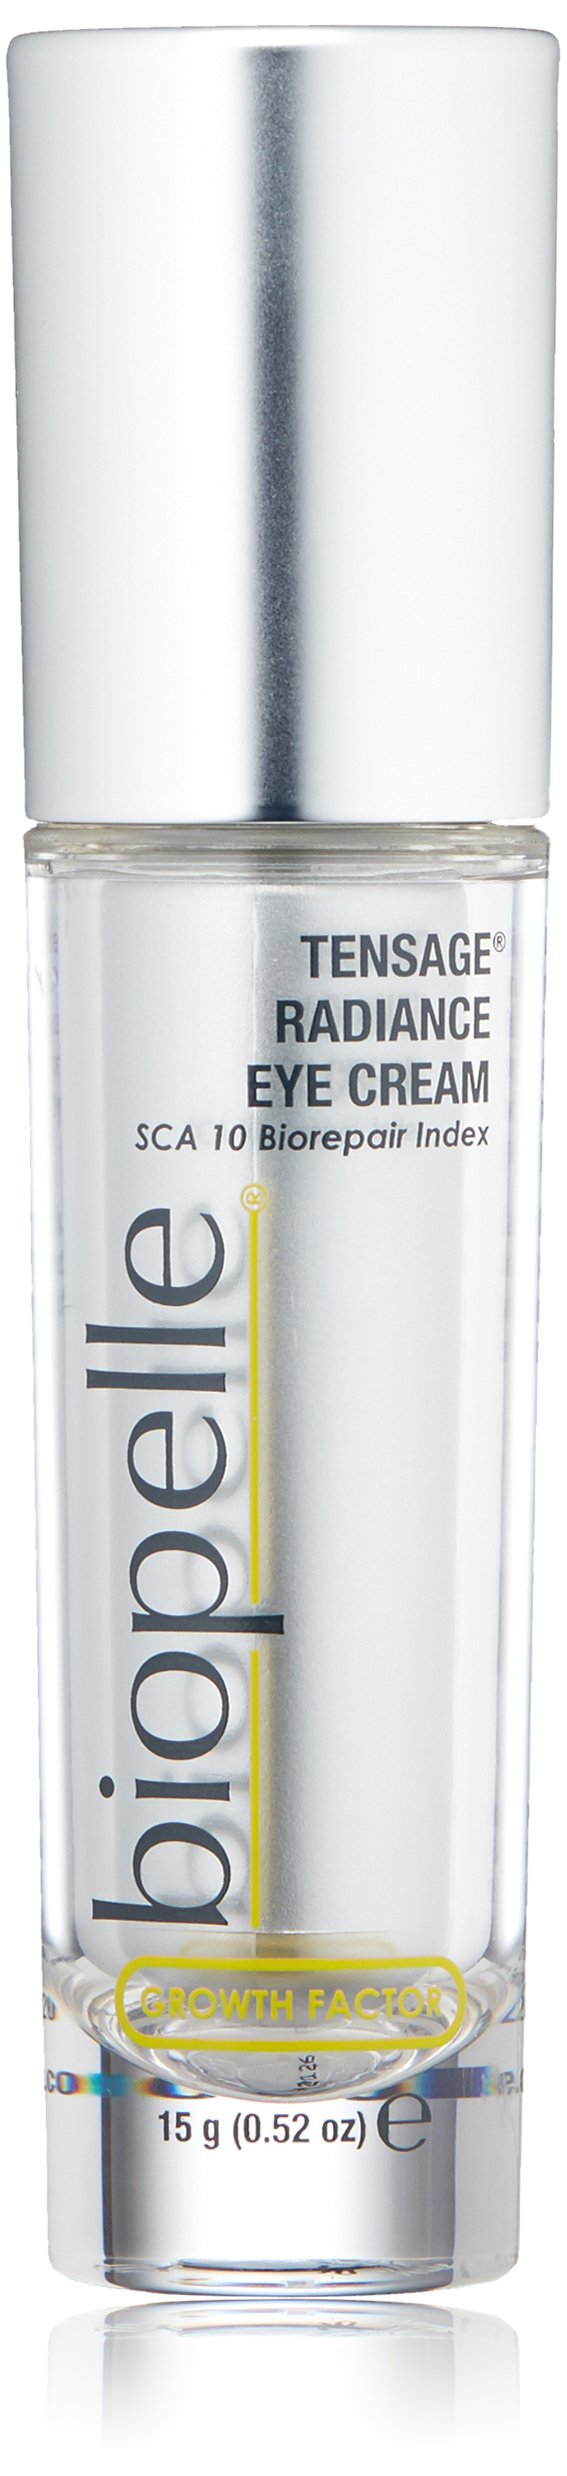 Biopelle Tensage Radiance Eye Cream, 0.52 oz.